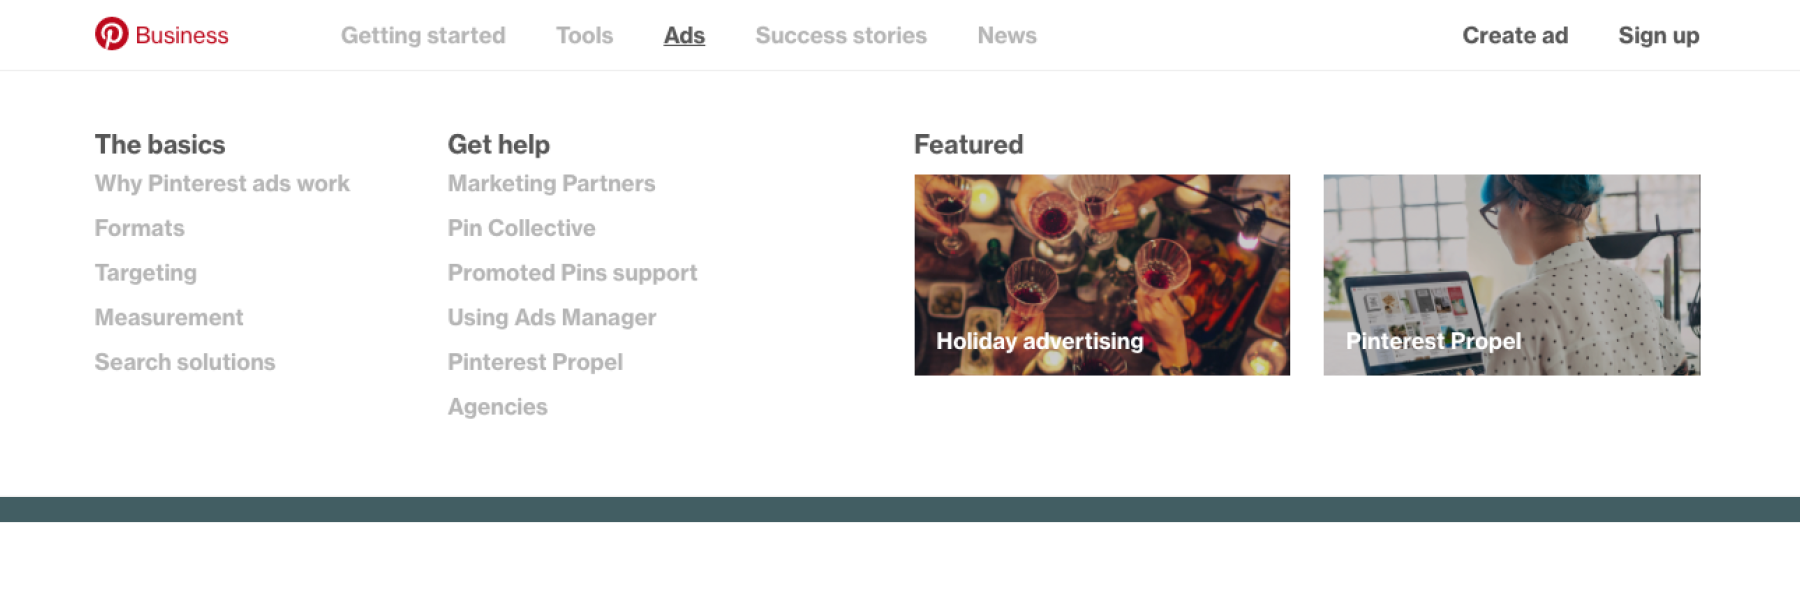 Pinterest for Business Nav Menu